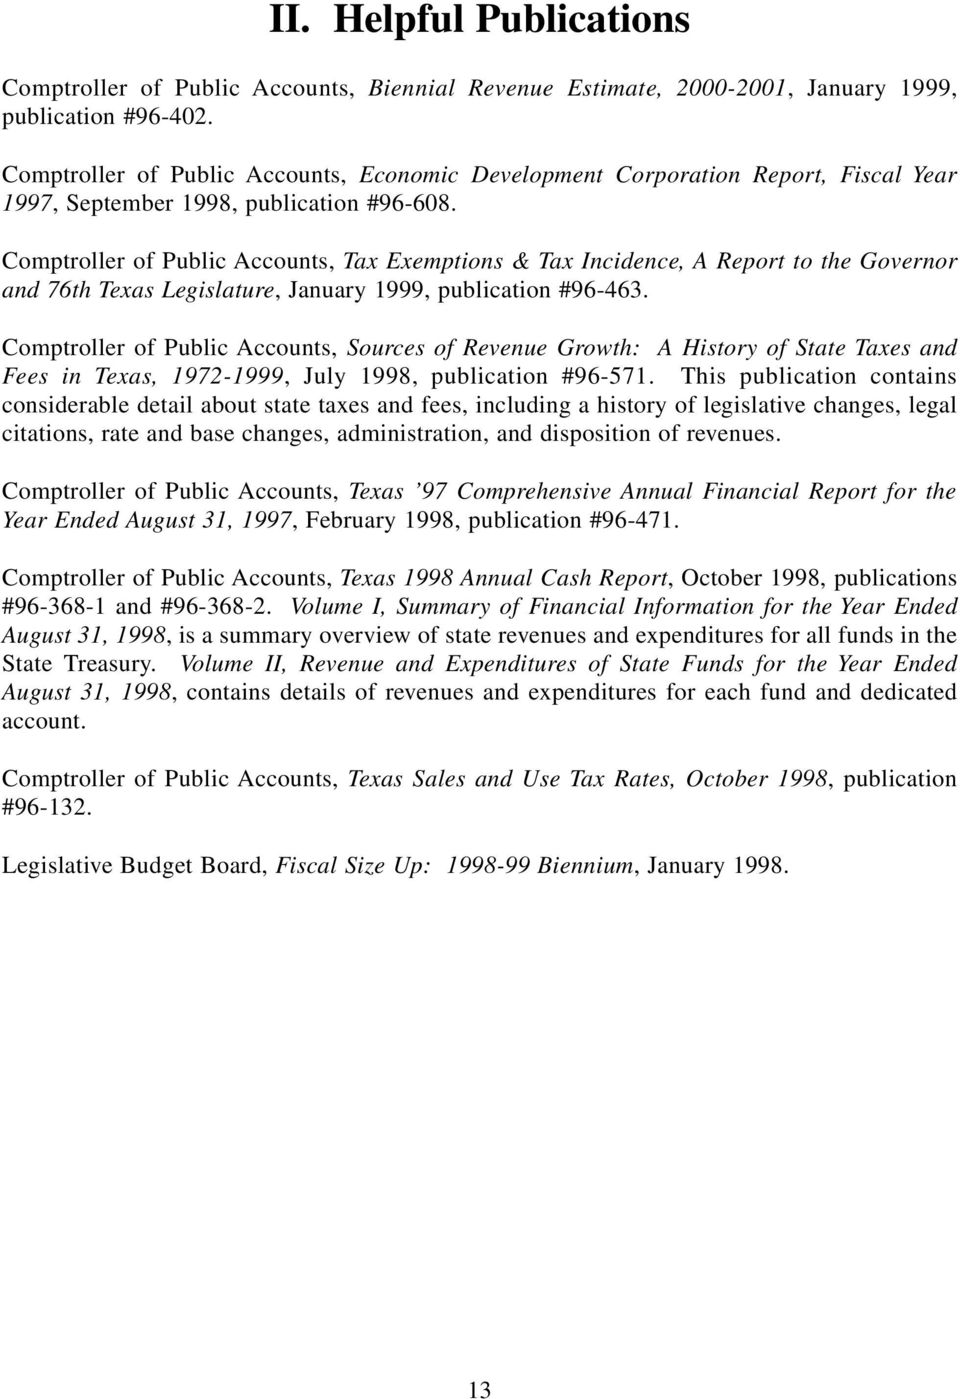 Comptroller of Public Accounts, Tax Exemptions & Tax Incidence, A Report to the Governor and 76th Texas Legislature, January 1999, publication #96-463.